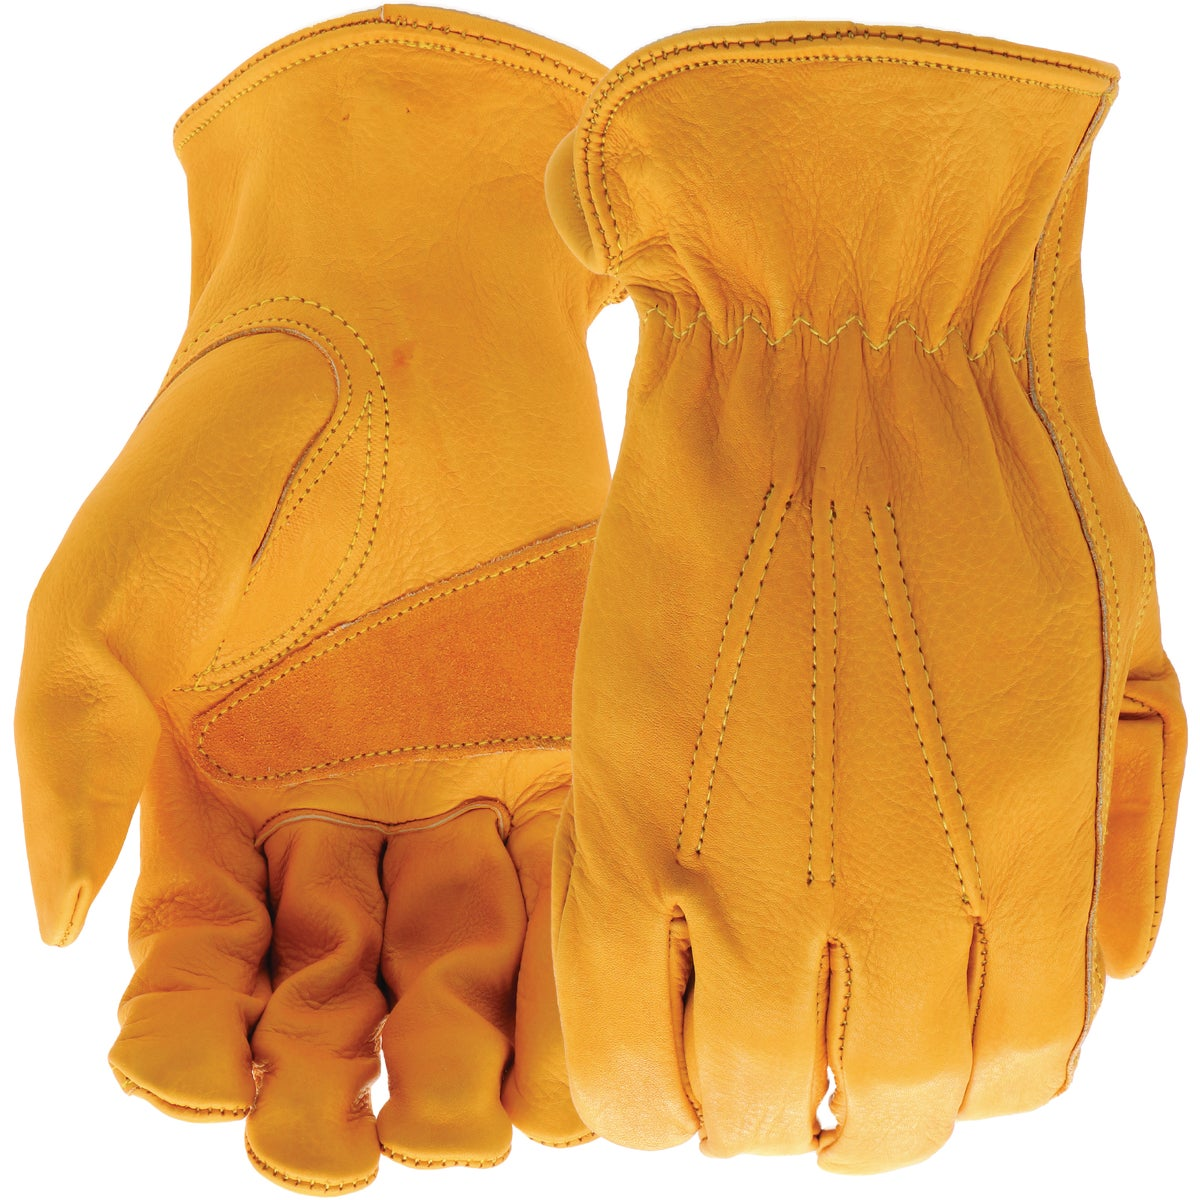 MED GRAIN LEATHER GLOVE - 1130M by Wells Lamont